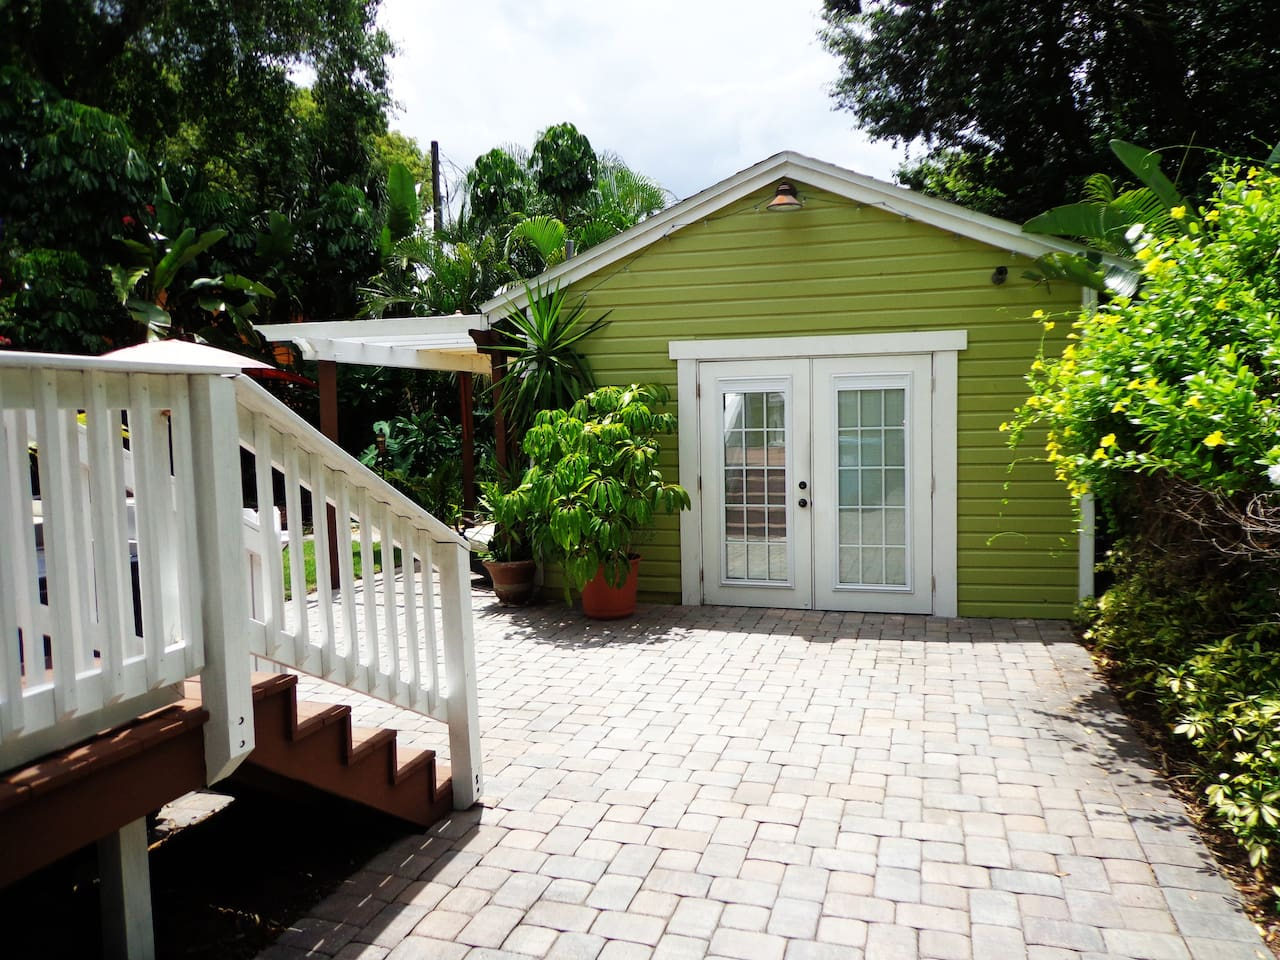 Our bungalow is a separate self-sustaining building in the back of the property. Private & spacious.